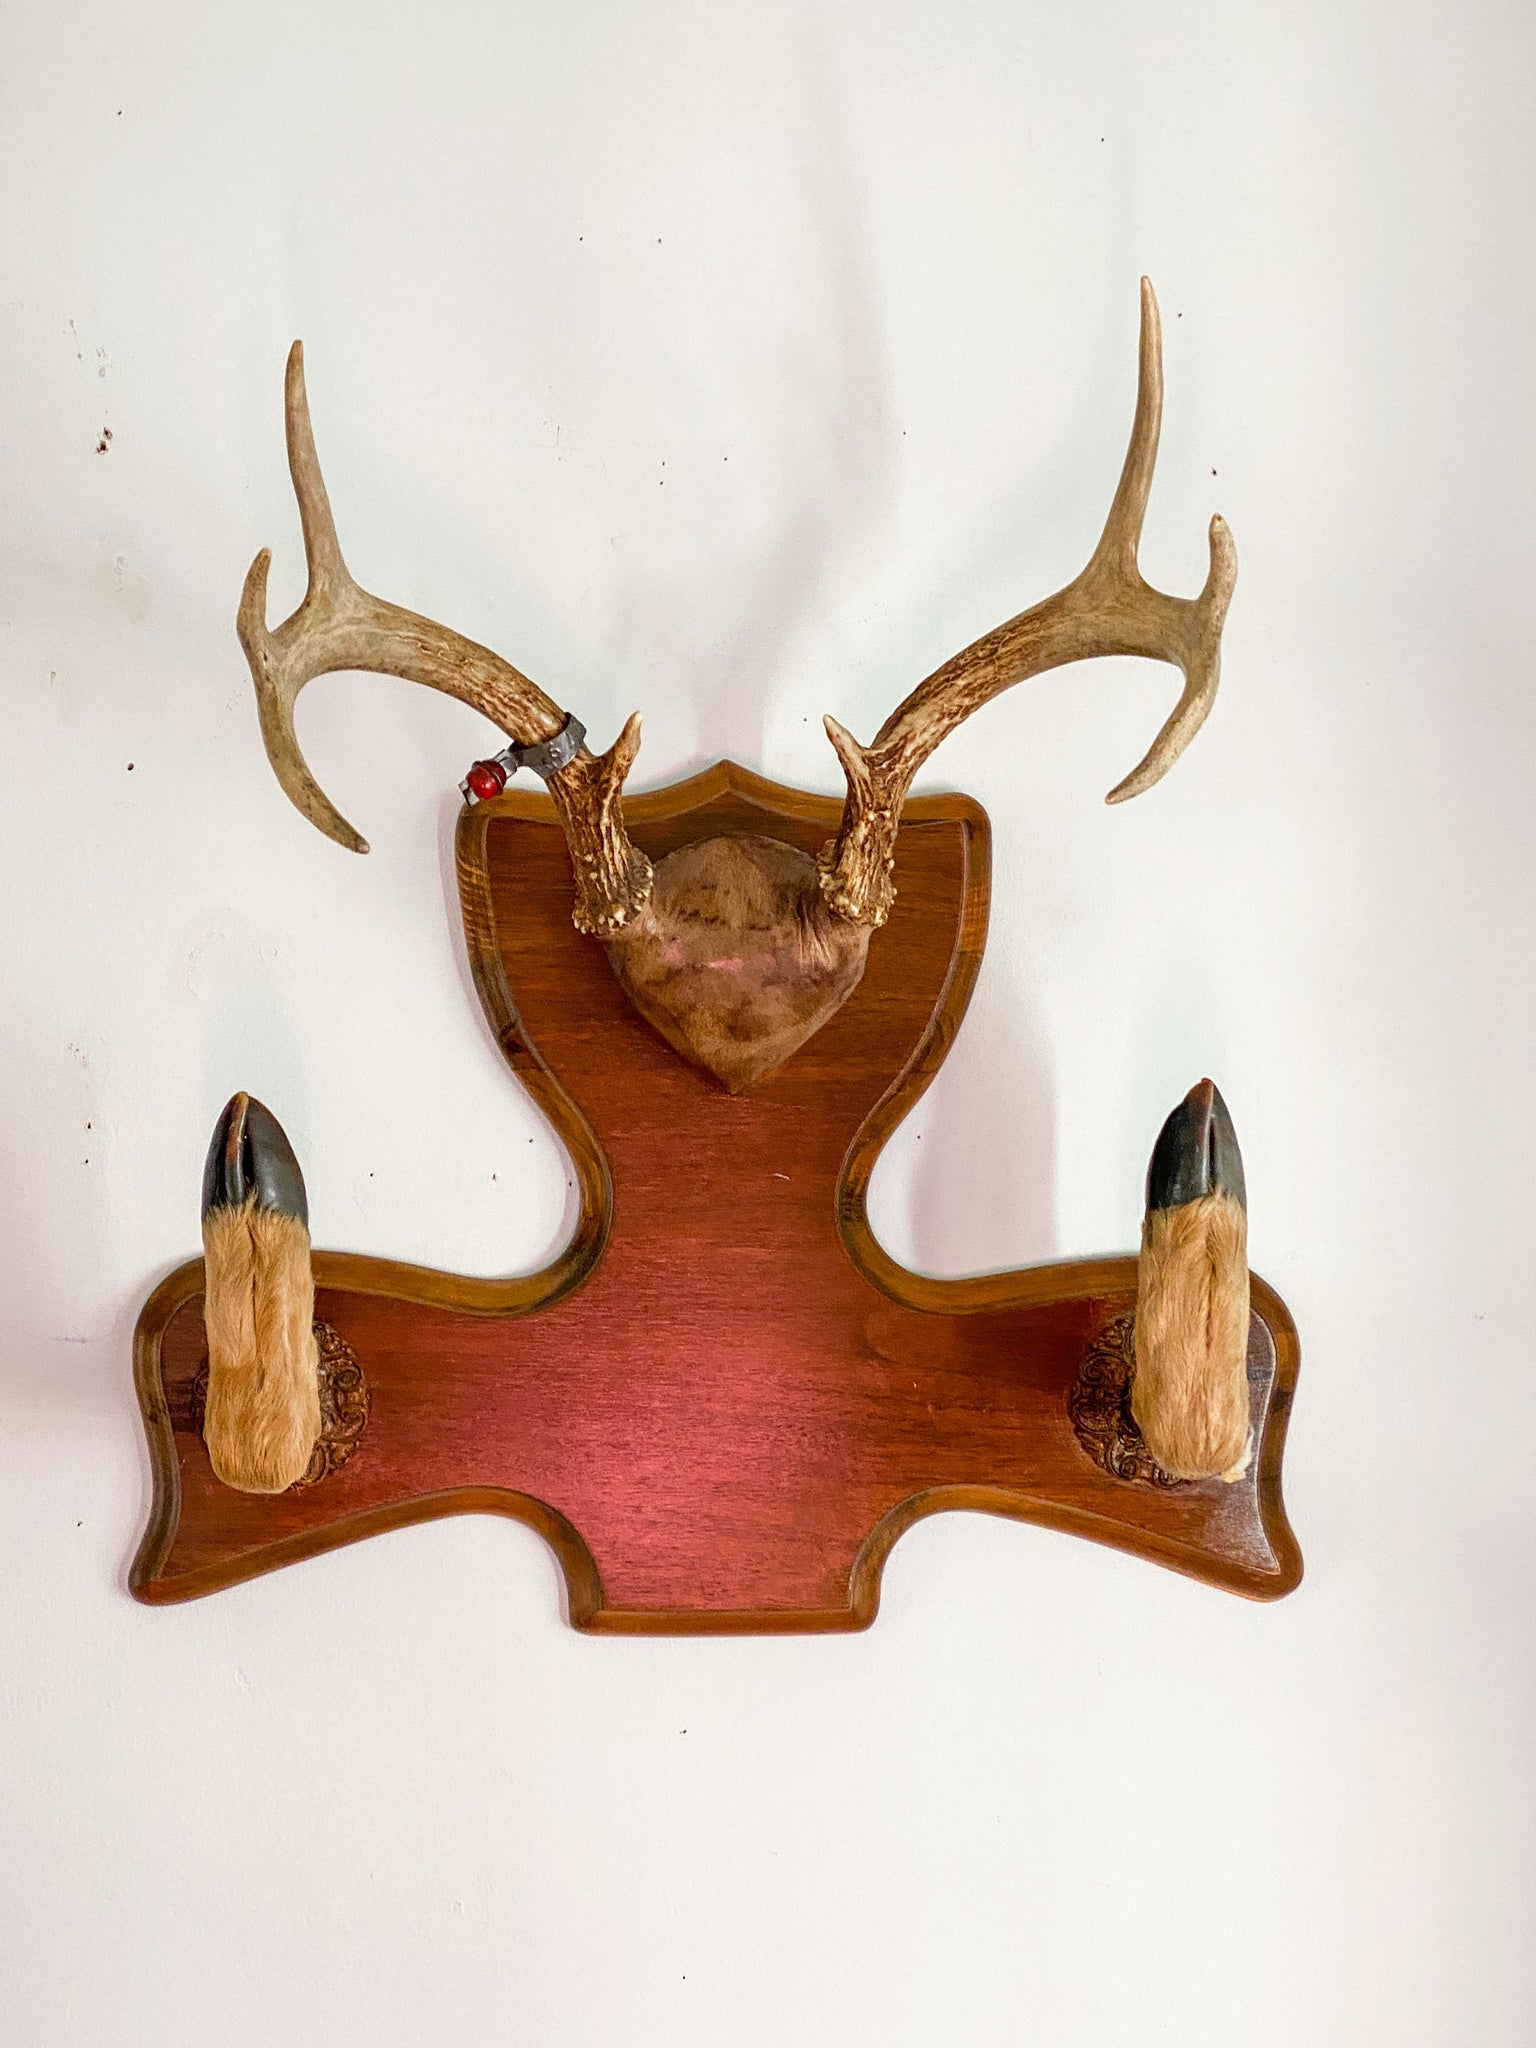 Vintage 8 point Deer Antlers with Hoof Rack.